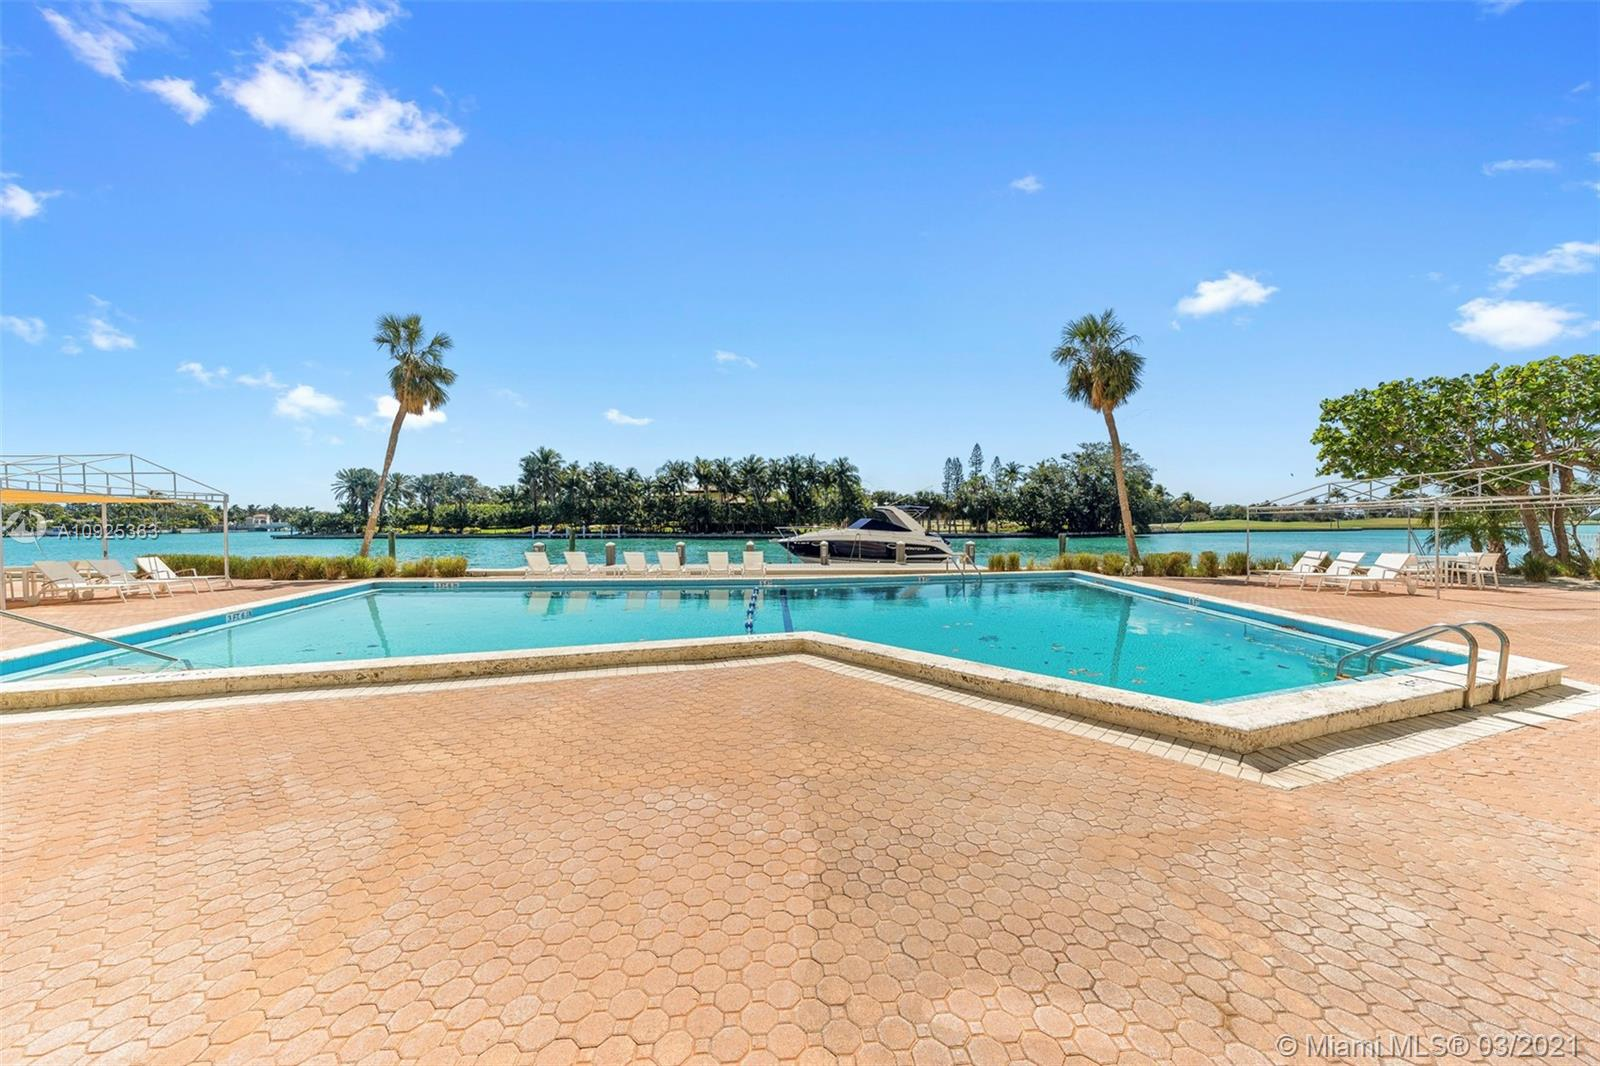 Spectacularly updated 1 bed 1.5 baths with no stone left unturned. Jaw-dropping open custom kitchen layered in Pierre Bianco countertops and smart appliances. Gorgeous white glass floors throughout, newly installed hurricane impact glass and stunningly completed baths. Enjoy breathtaking views of the intracoastal waterway, Indian Creek golf course and sunsets. Amenities include bayfront swimming pool, exercise room and doorman. Complete building renovations including new bldg mechanicals in 2016 and common area/façade reno in 2017. The maintenance fee includes hot water and air conditioning. Located within walking distance to pristine beaches, Bal Harbour Shops, fine dining, houses or worship and A-rated K-8 public school. Situated on the most southern point of Bay Harbor Islands!